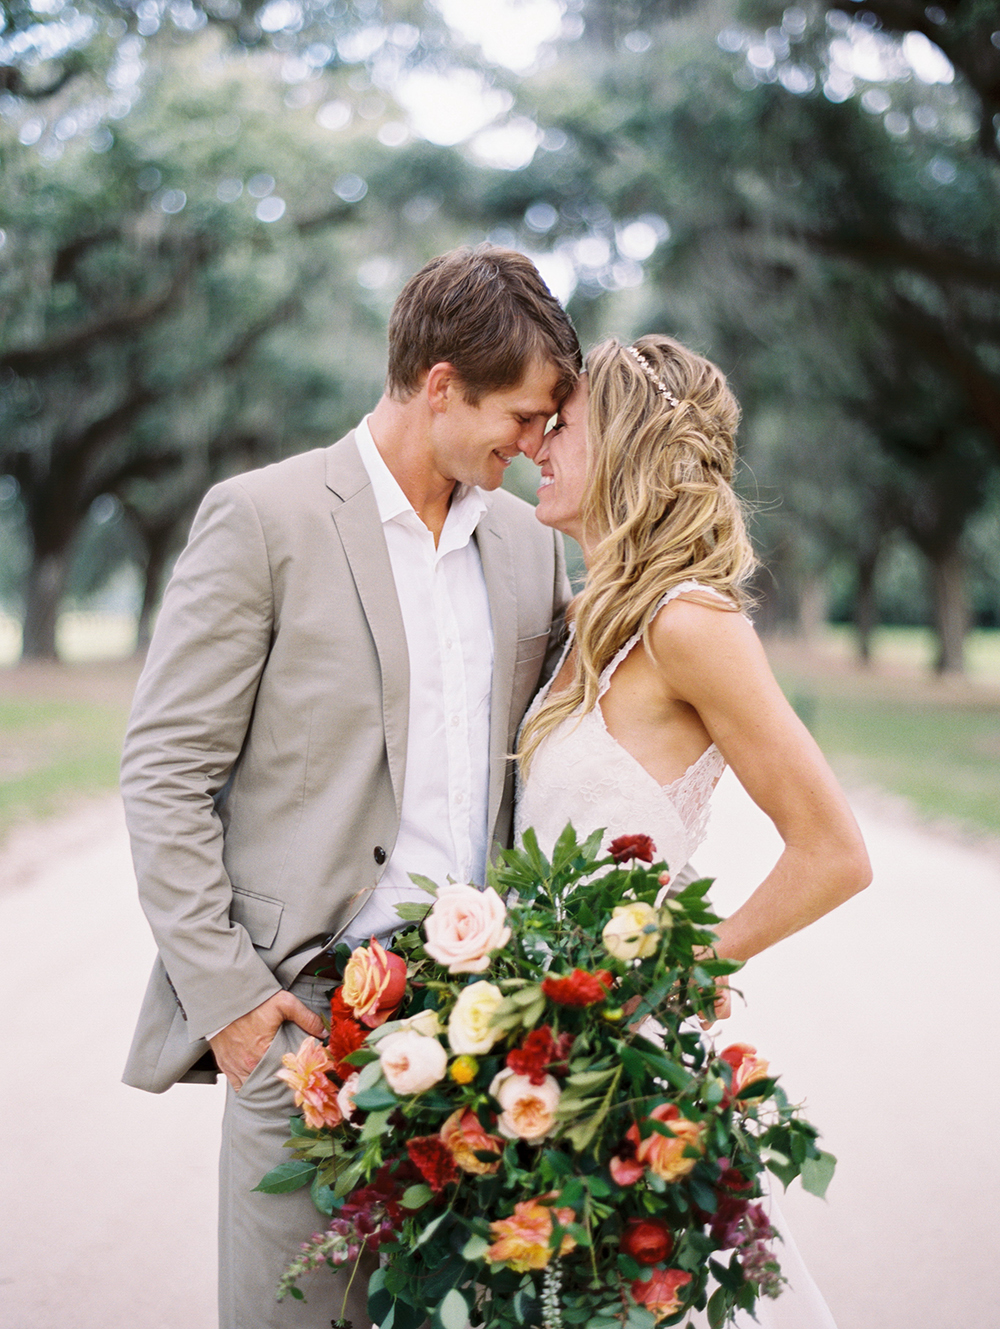 Boone Hall Wedding Inspiration from JoPhoto